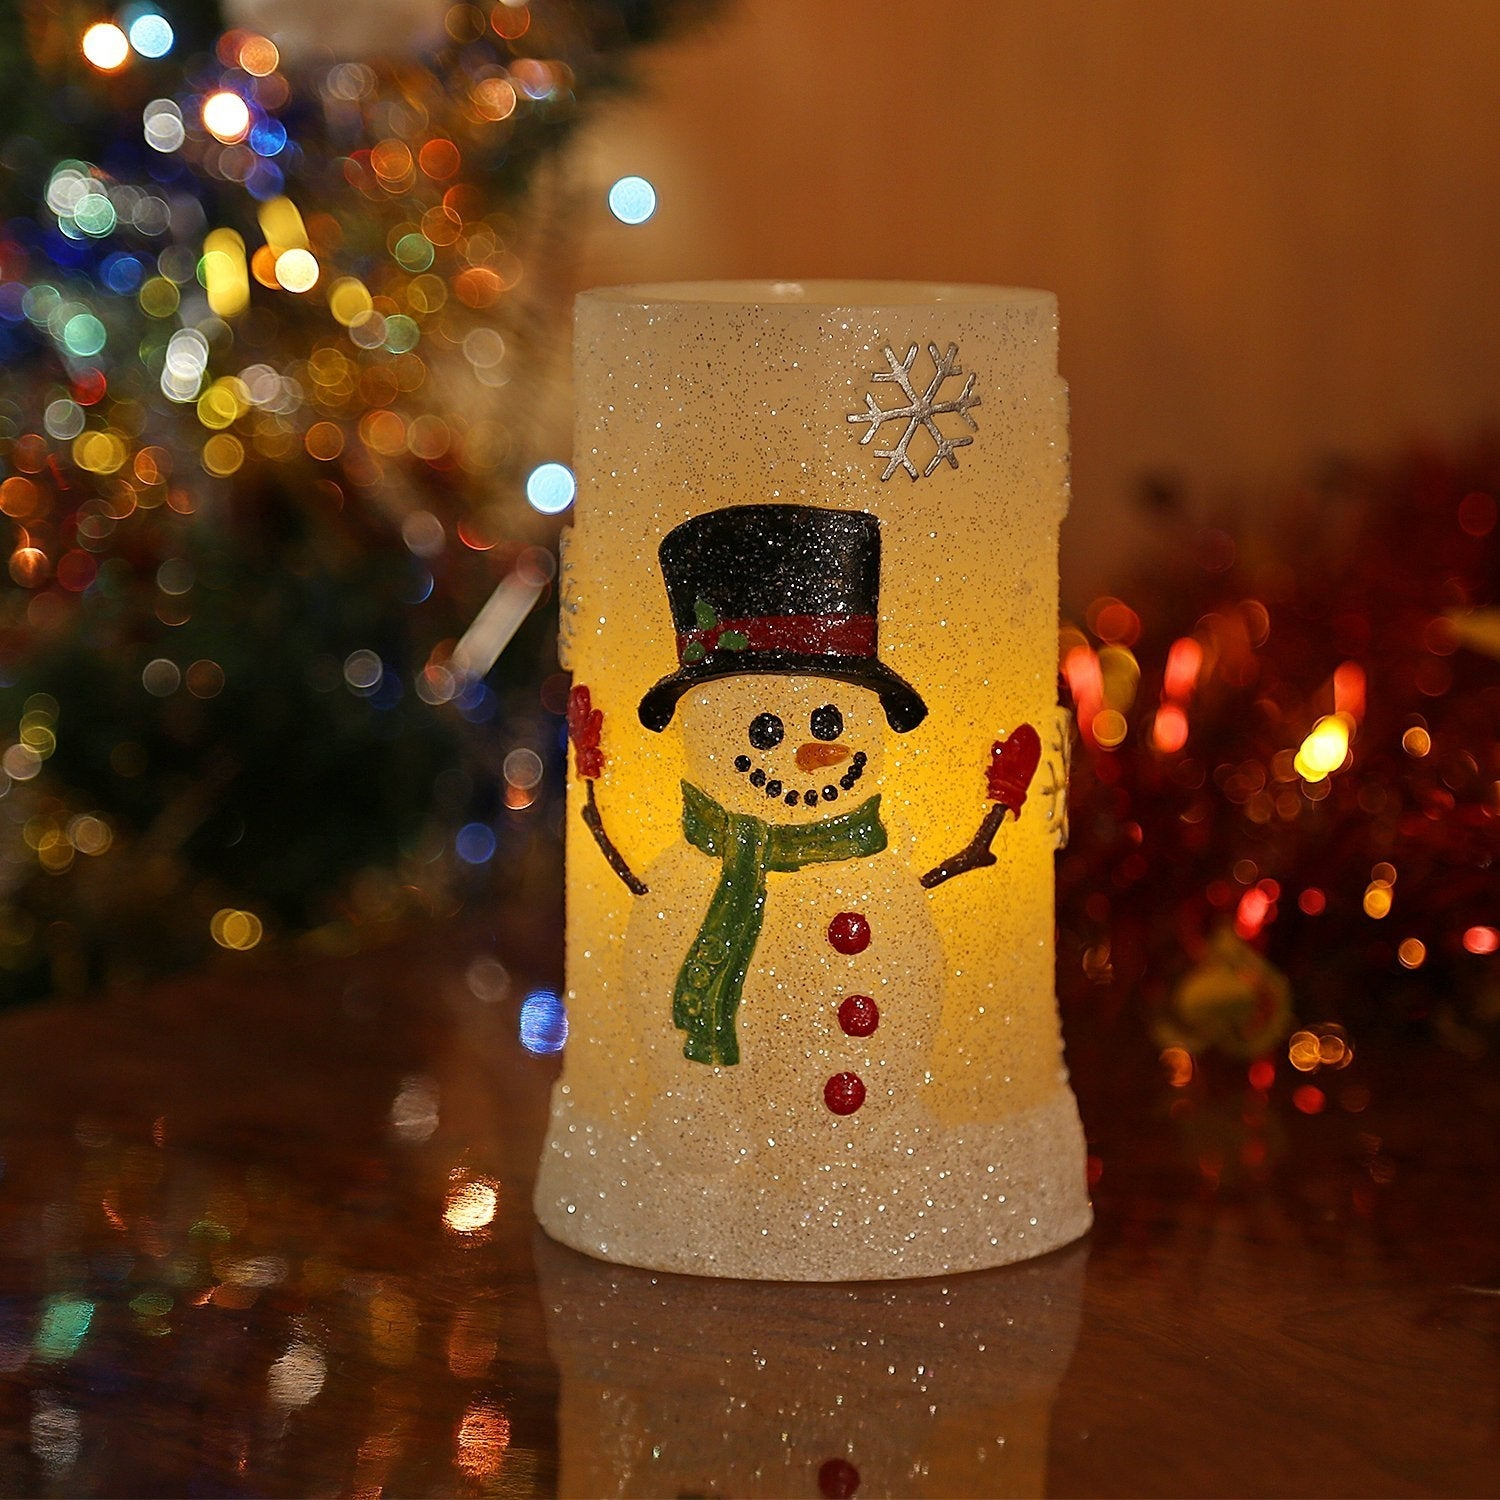 shop snowman flameless led candles with timer battery operated candles for holiday decorations and gift on sale free shipping on orders over 45 - Christmas Decorations Battery Operated Candles